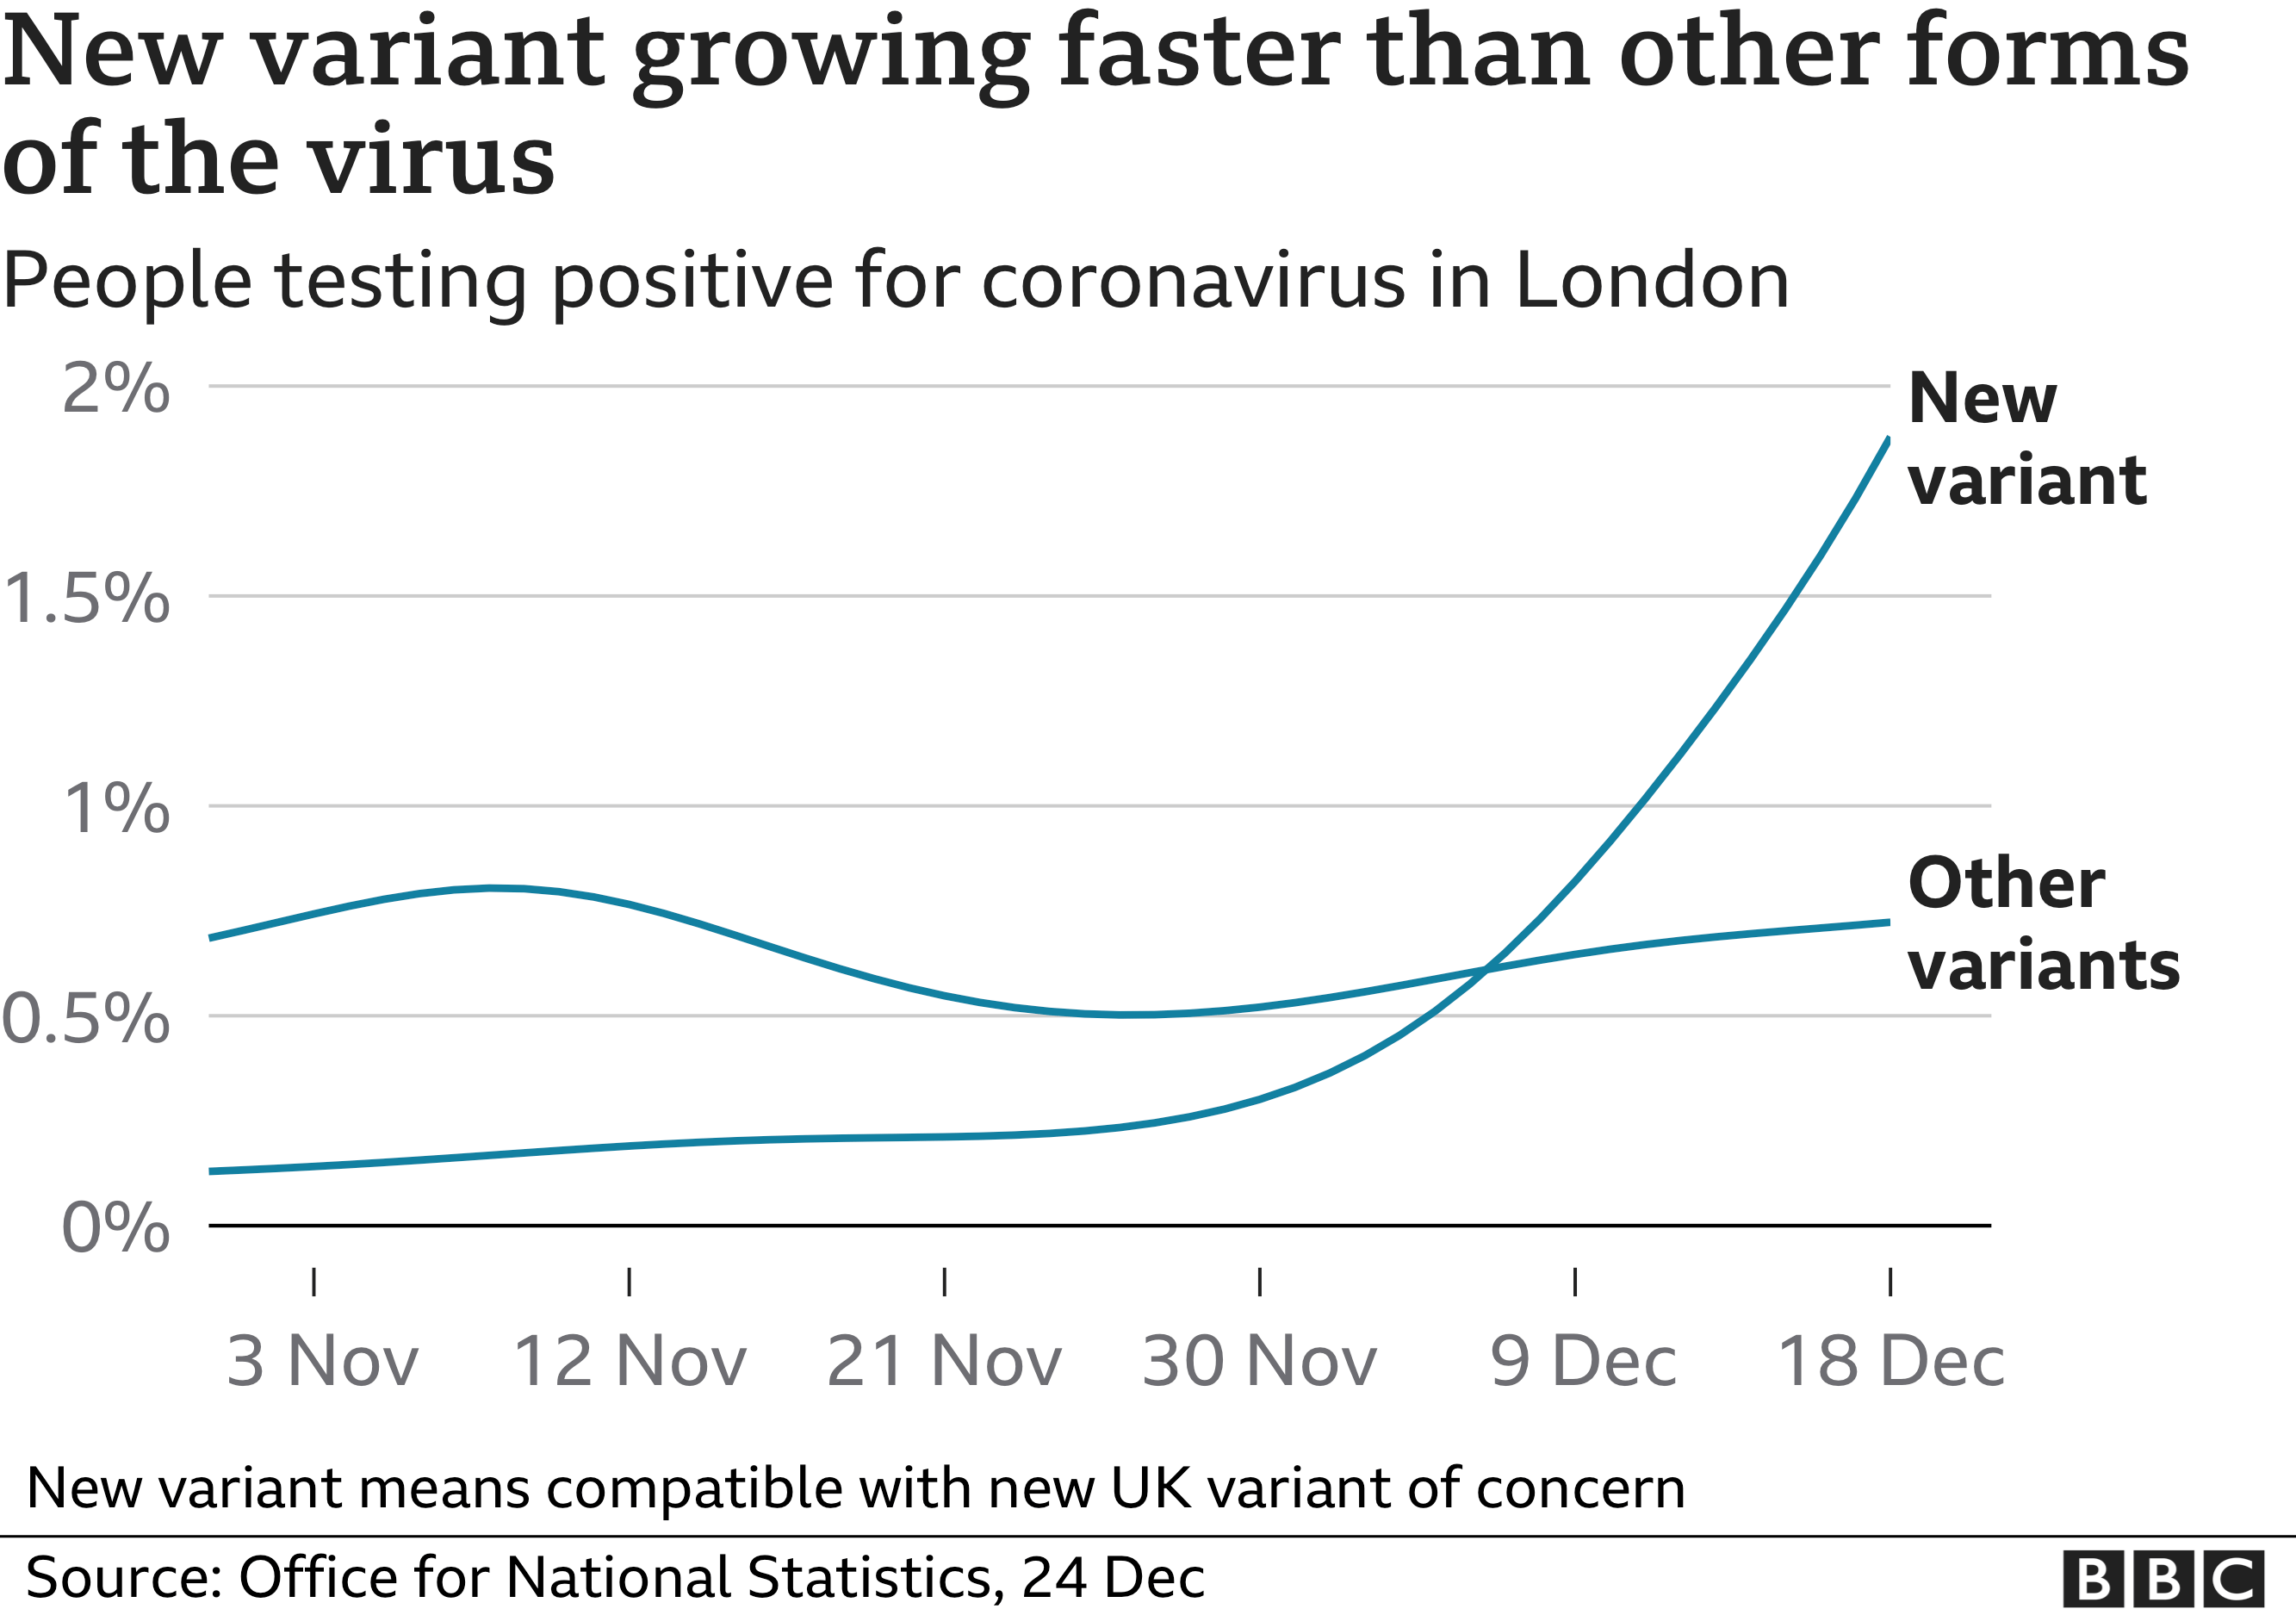 New variant growing faster than other variants in London